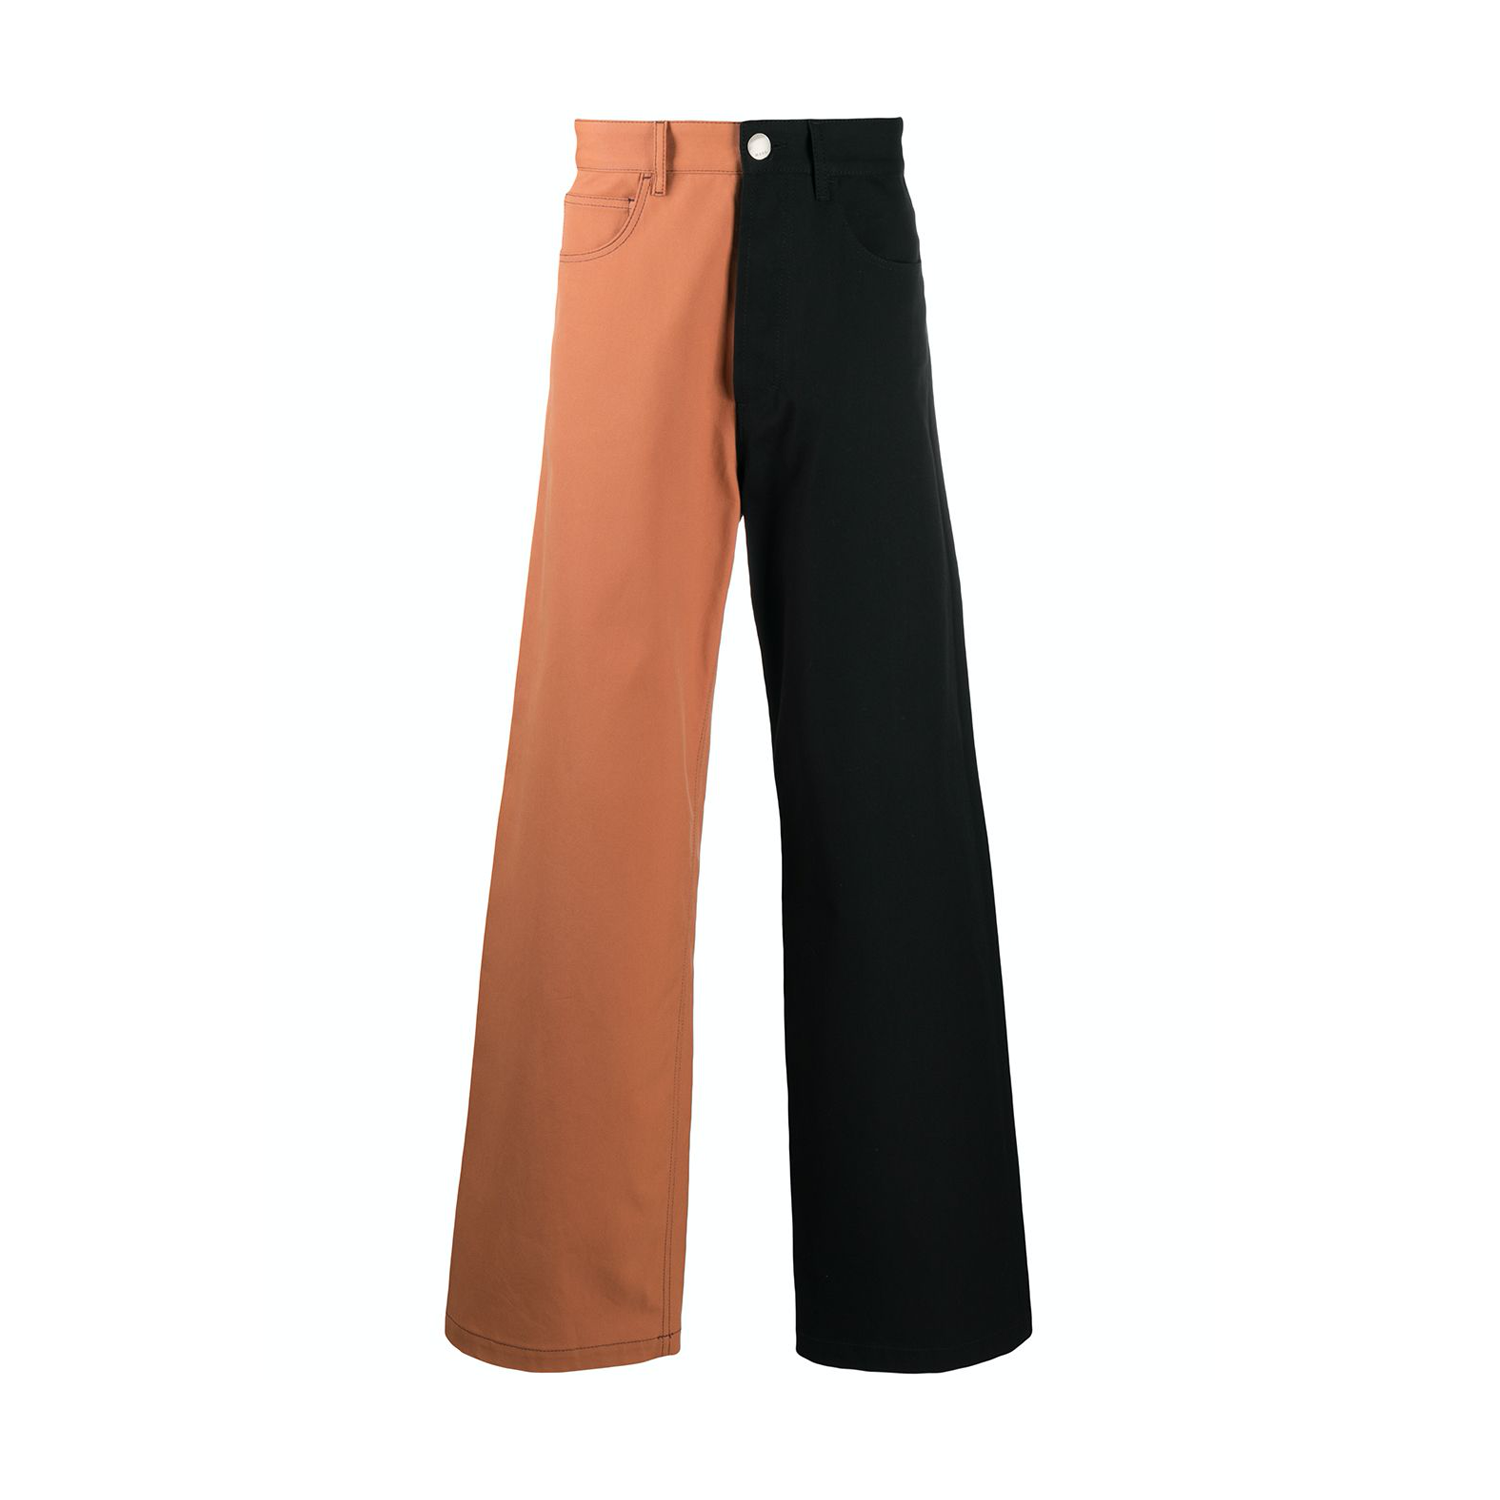 Two Tone Pant (Chili/Black)